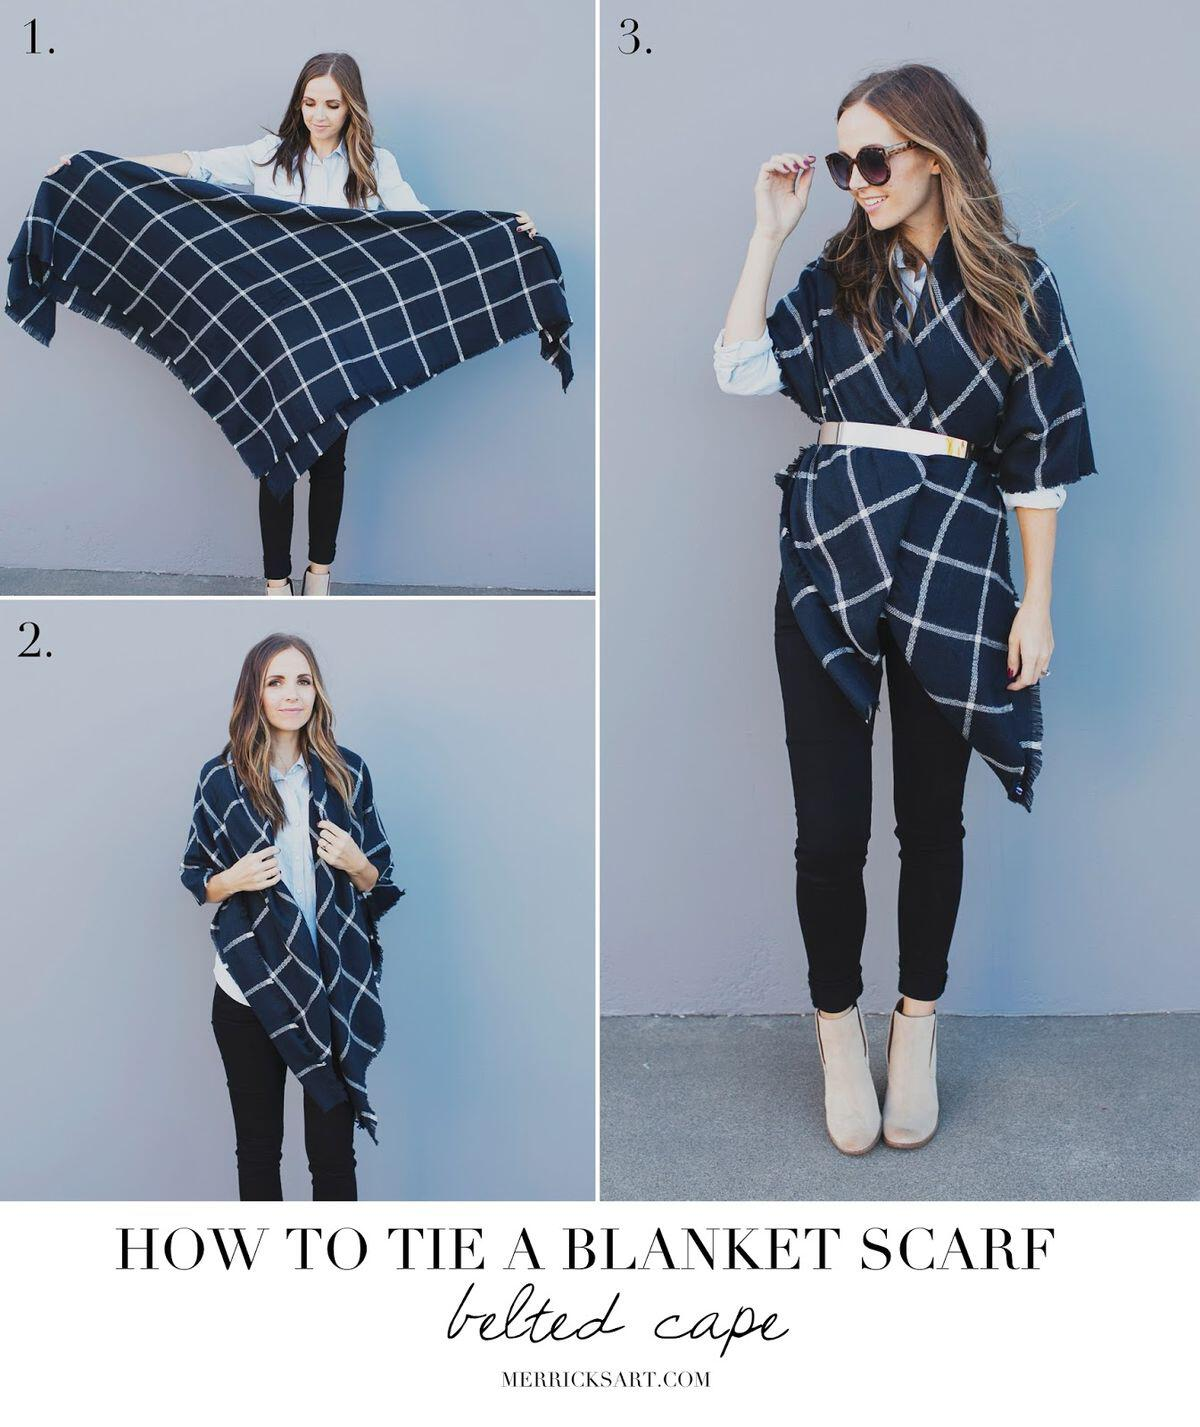 how to wear a cape outfit this fall 15 looks you can copy 7 - How to wear a cape outfit this fall -15 looks you can copy